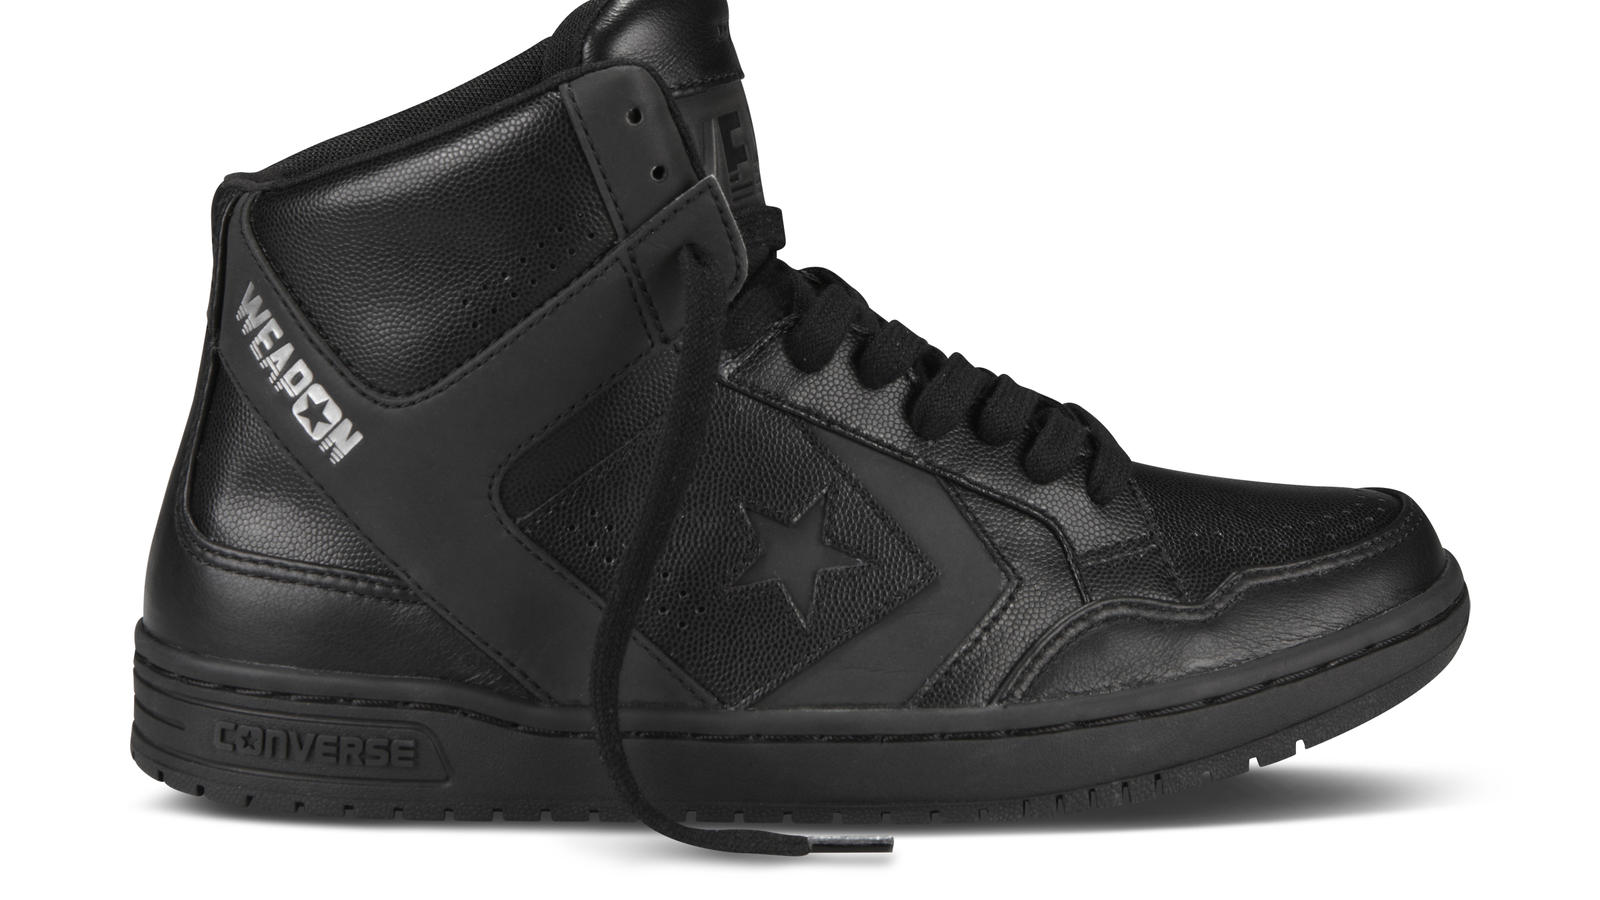 Re-mastered CONS Weapon Sneaker - Nike